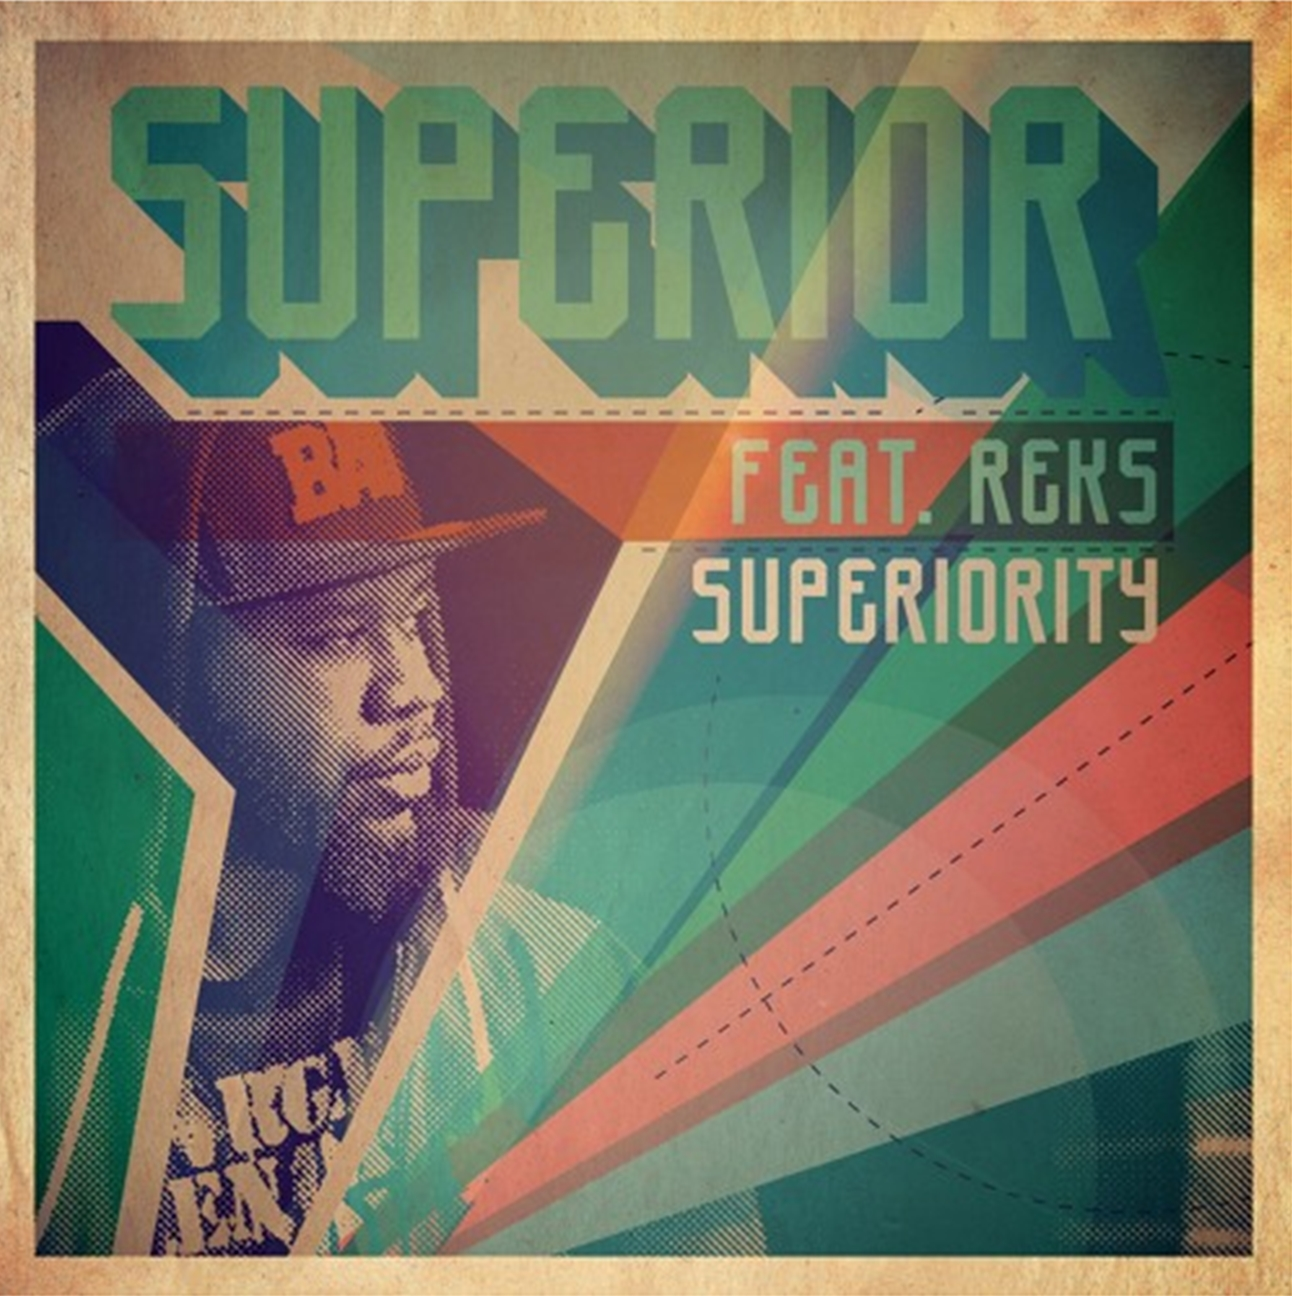 Superiority, reks